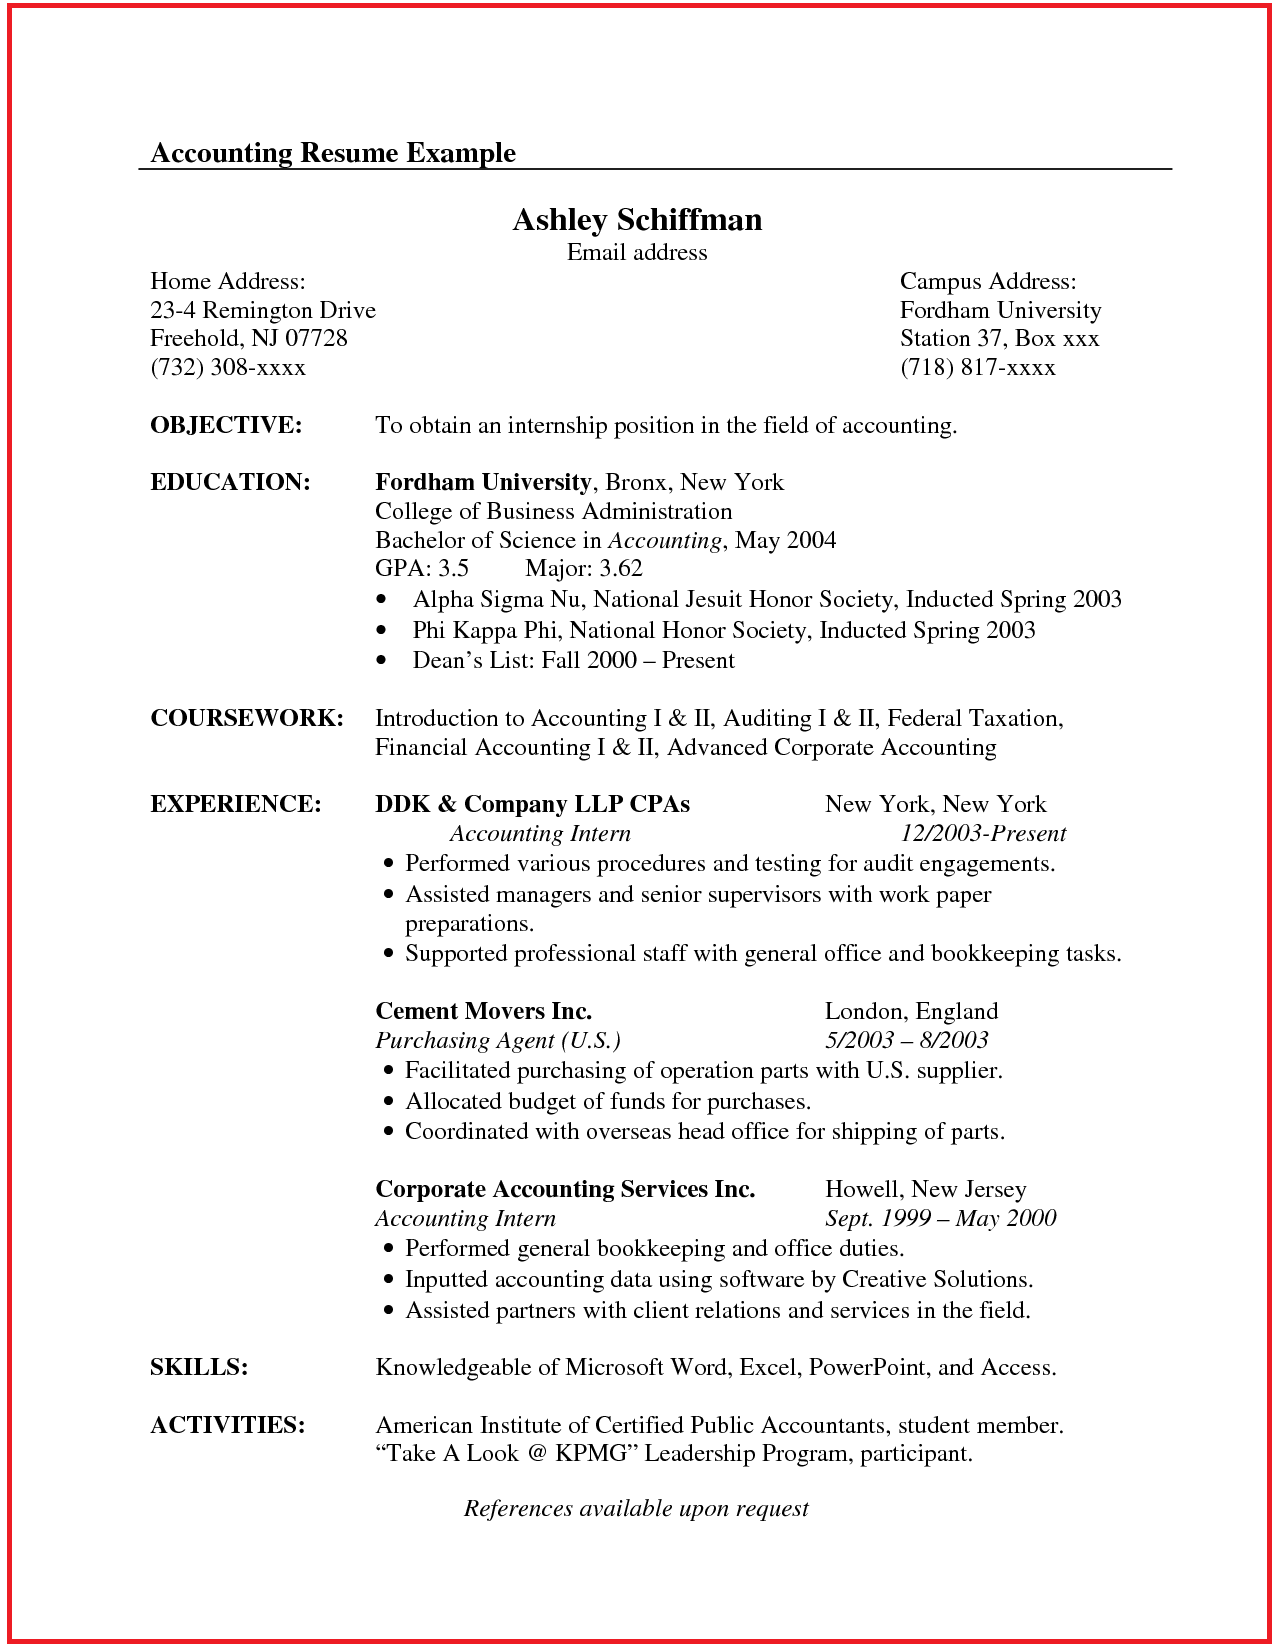 Resumes For Students Accountant Resume Sample Canada  Httpwwwjobresumewebsite